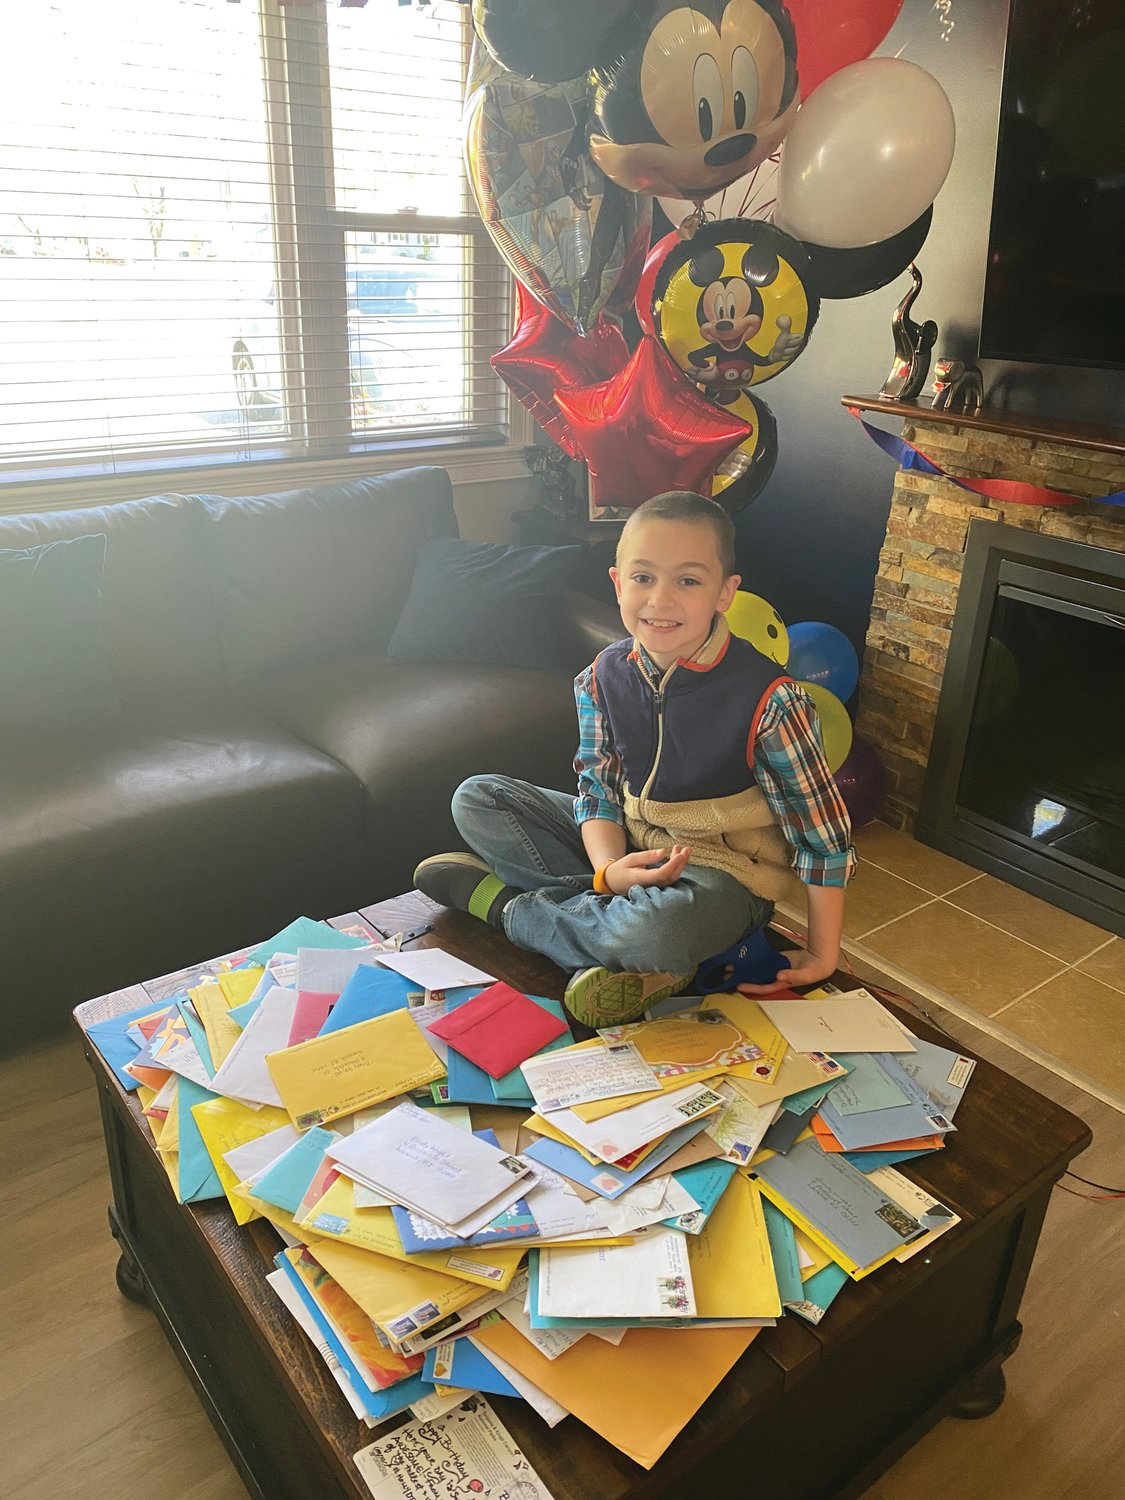 BIRTHDAY BOY: Brady Wright spent his 9th birthday opening over 200 cards from across the United States. His favorite postcard is one from North Carolina, with a picture of the USS North Carolina battleship.